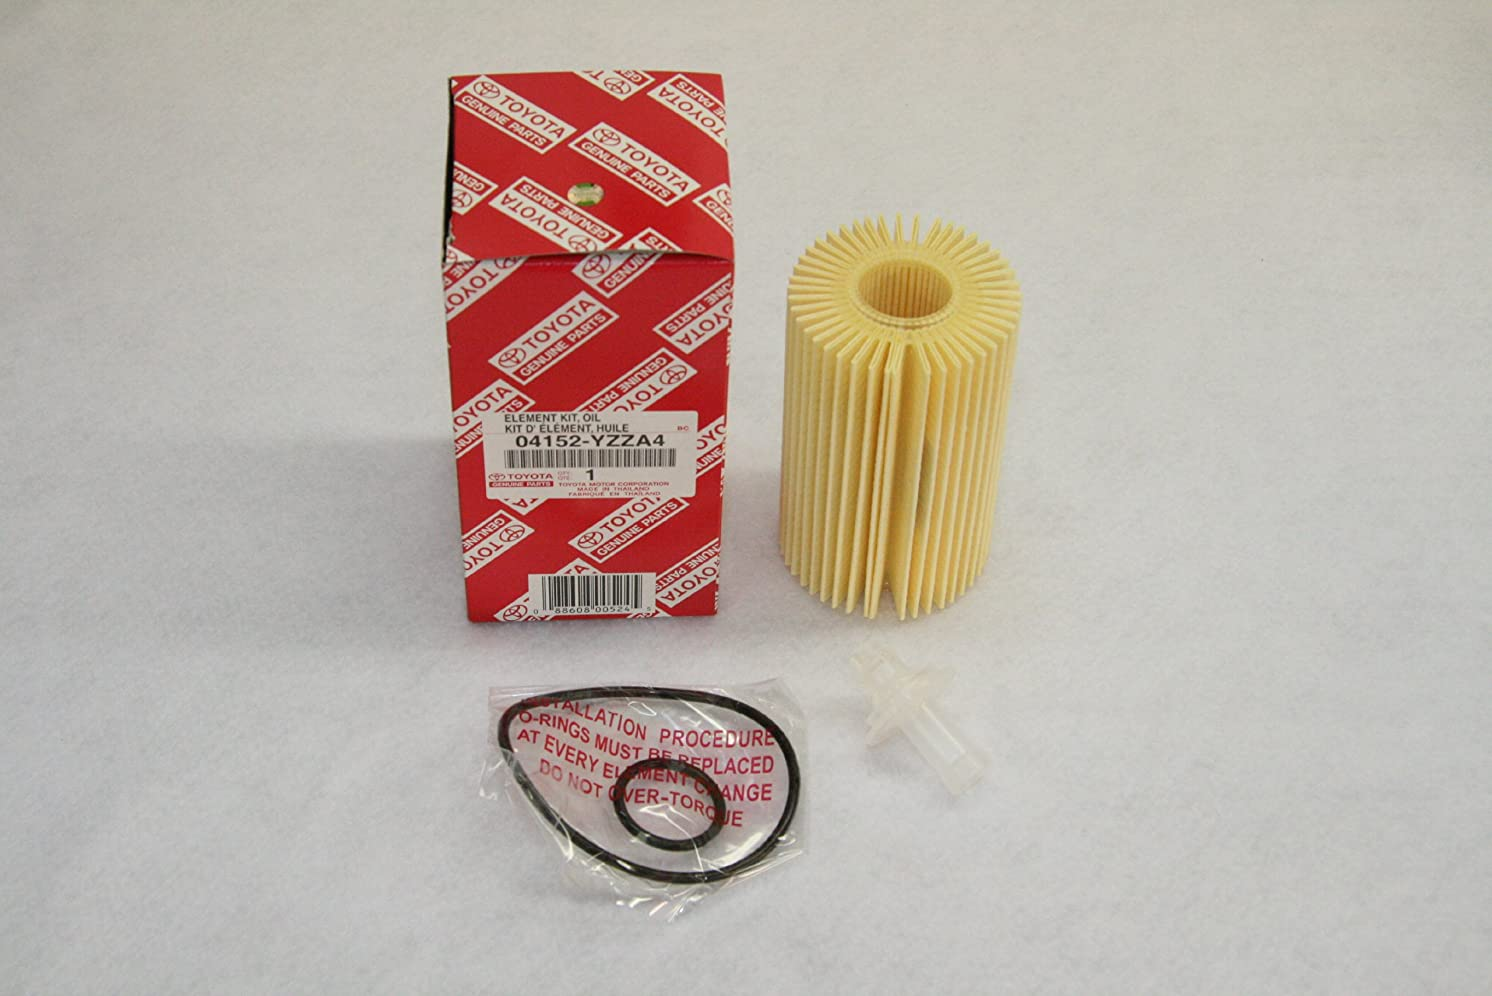 Toyota Genuine Parts 04152-YZZA4 Replaceable Oil Filter Element 1 Case (QTY 10)